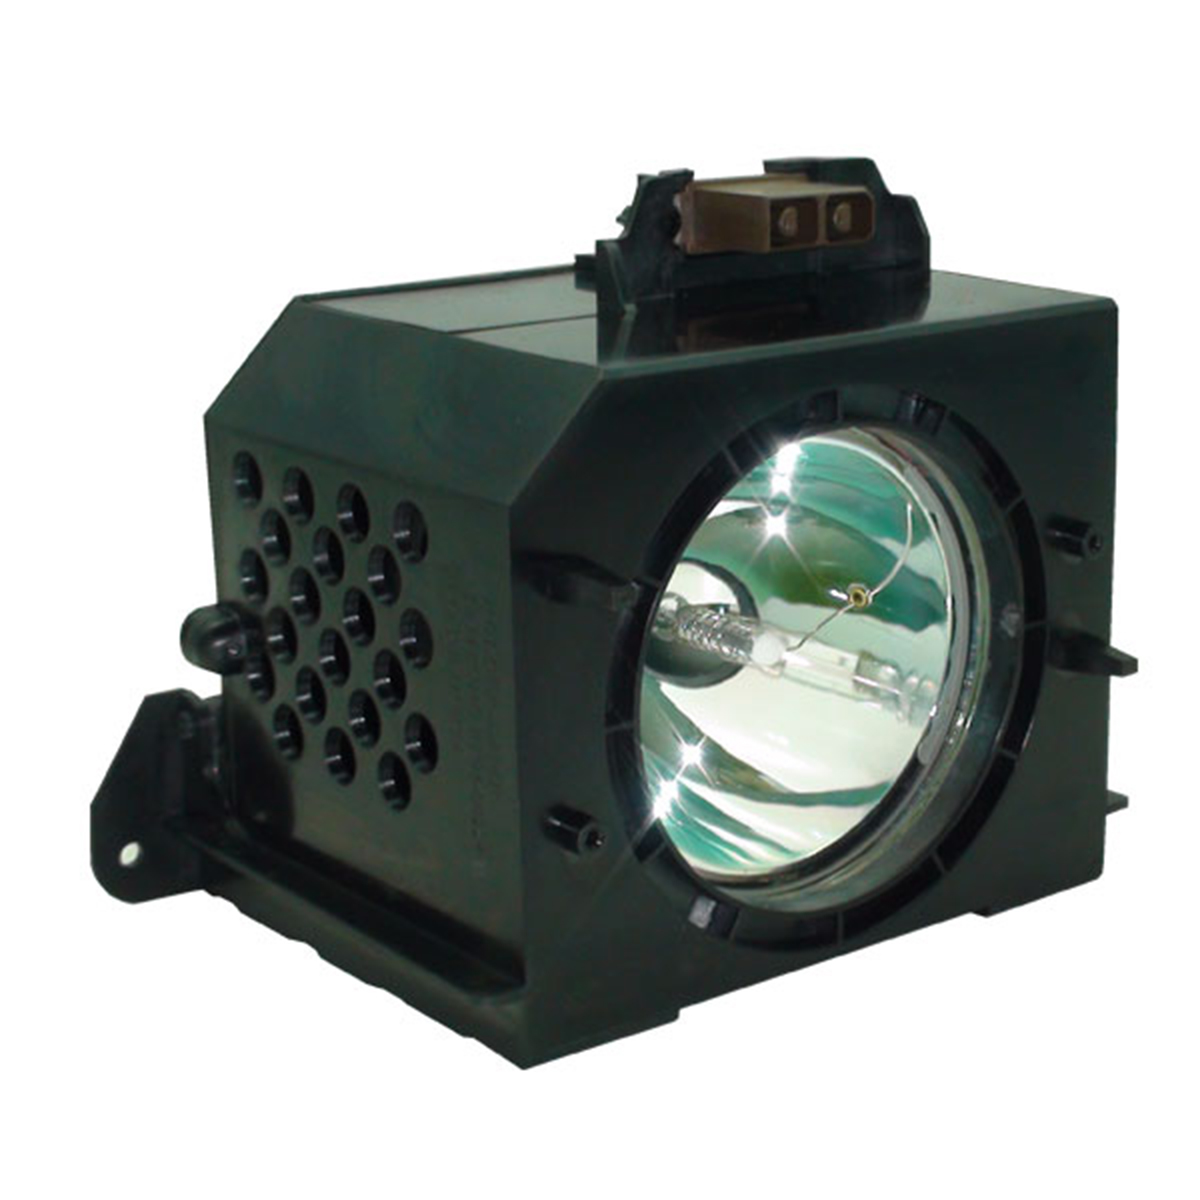 Lutema Platinum for Samsung HLN437W1X TV Lamp with Housing (Original Philips Bulb Inside) - image 2 of 5